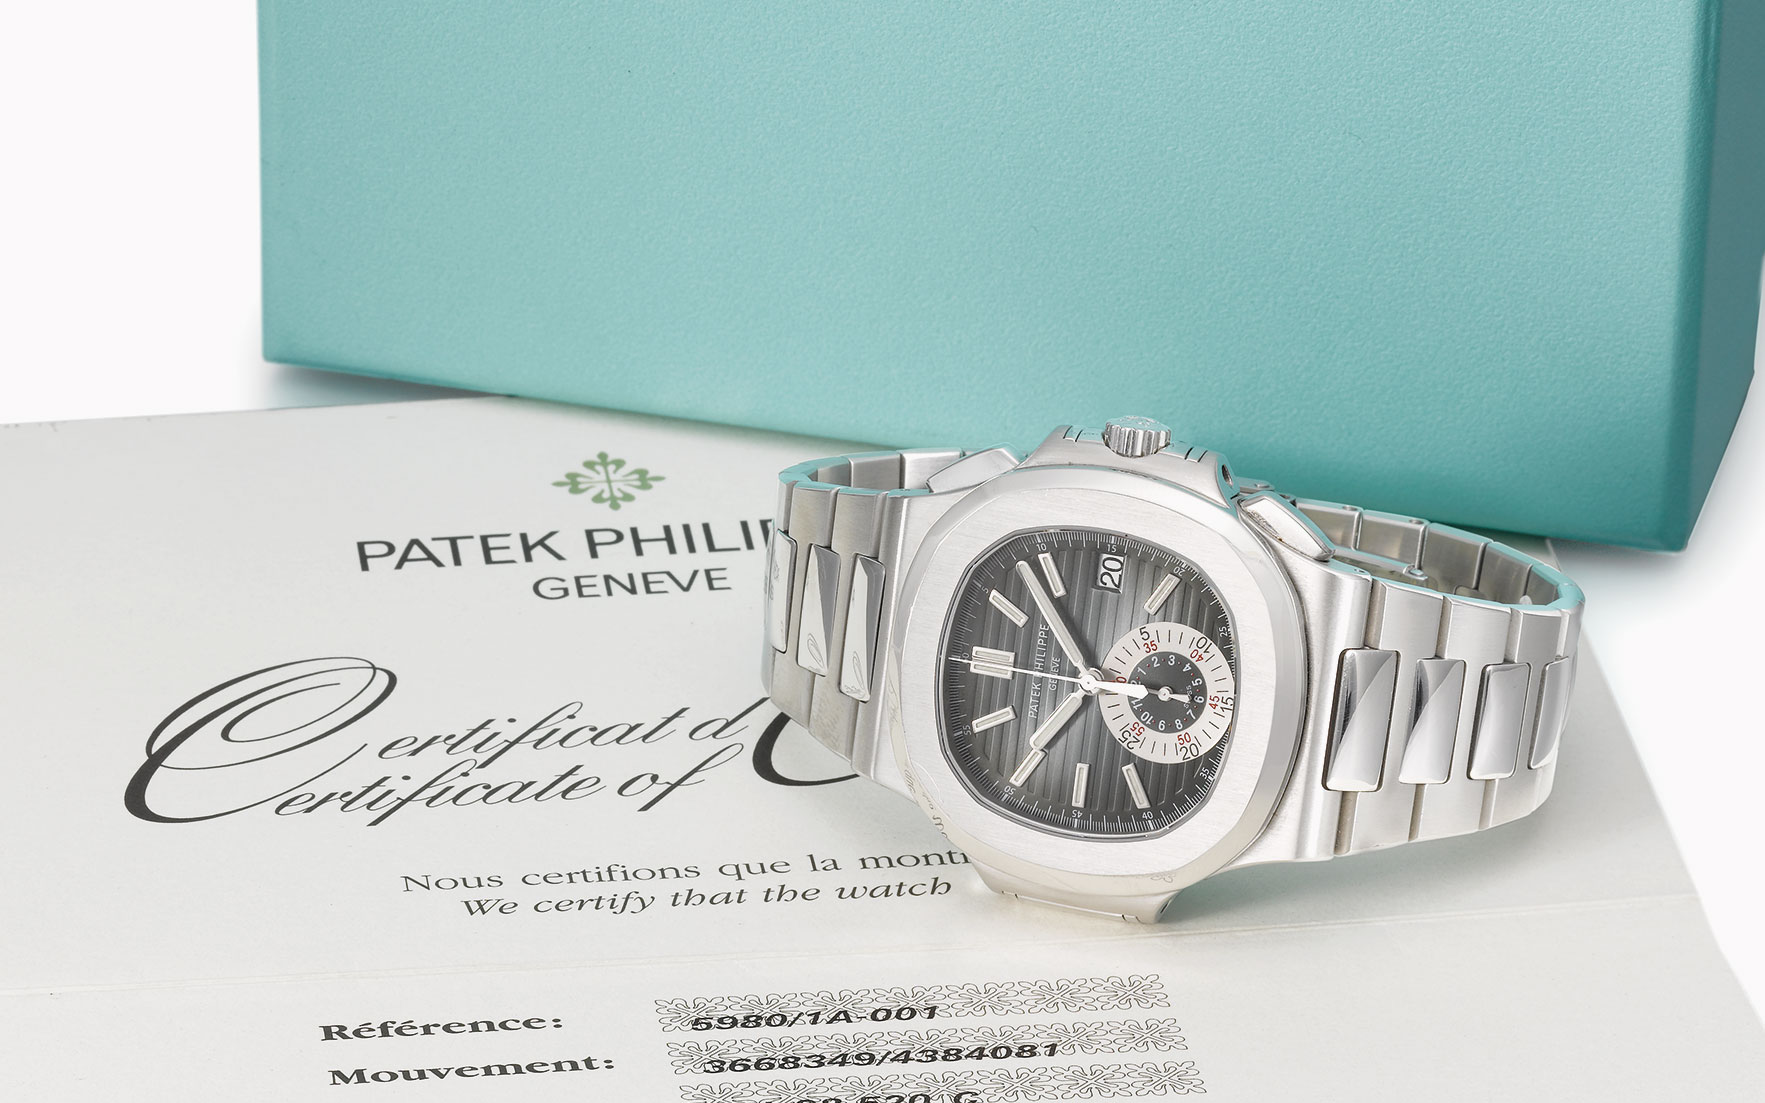 Secrets of the Patek Philippe Nautilus